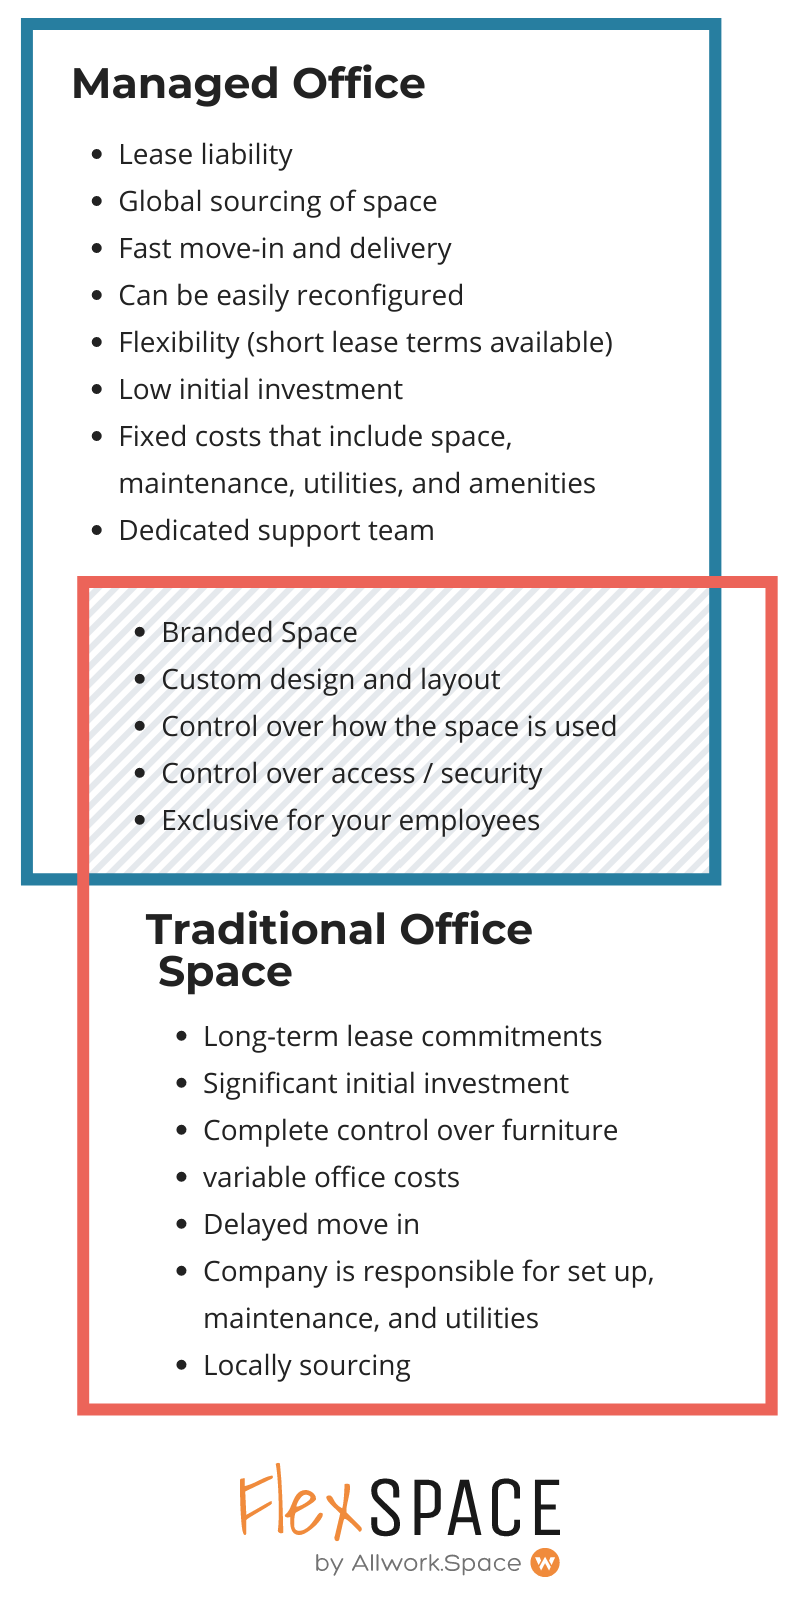 Flexible and managed offices are normally found in business centers with onsite staff and receptionists, who take your calls and greet visitors.